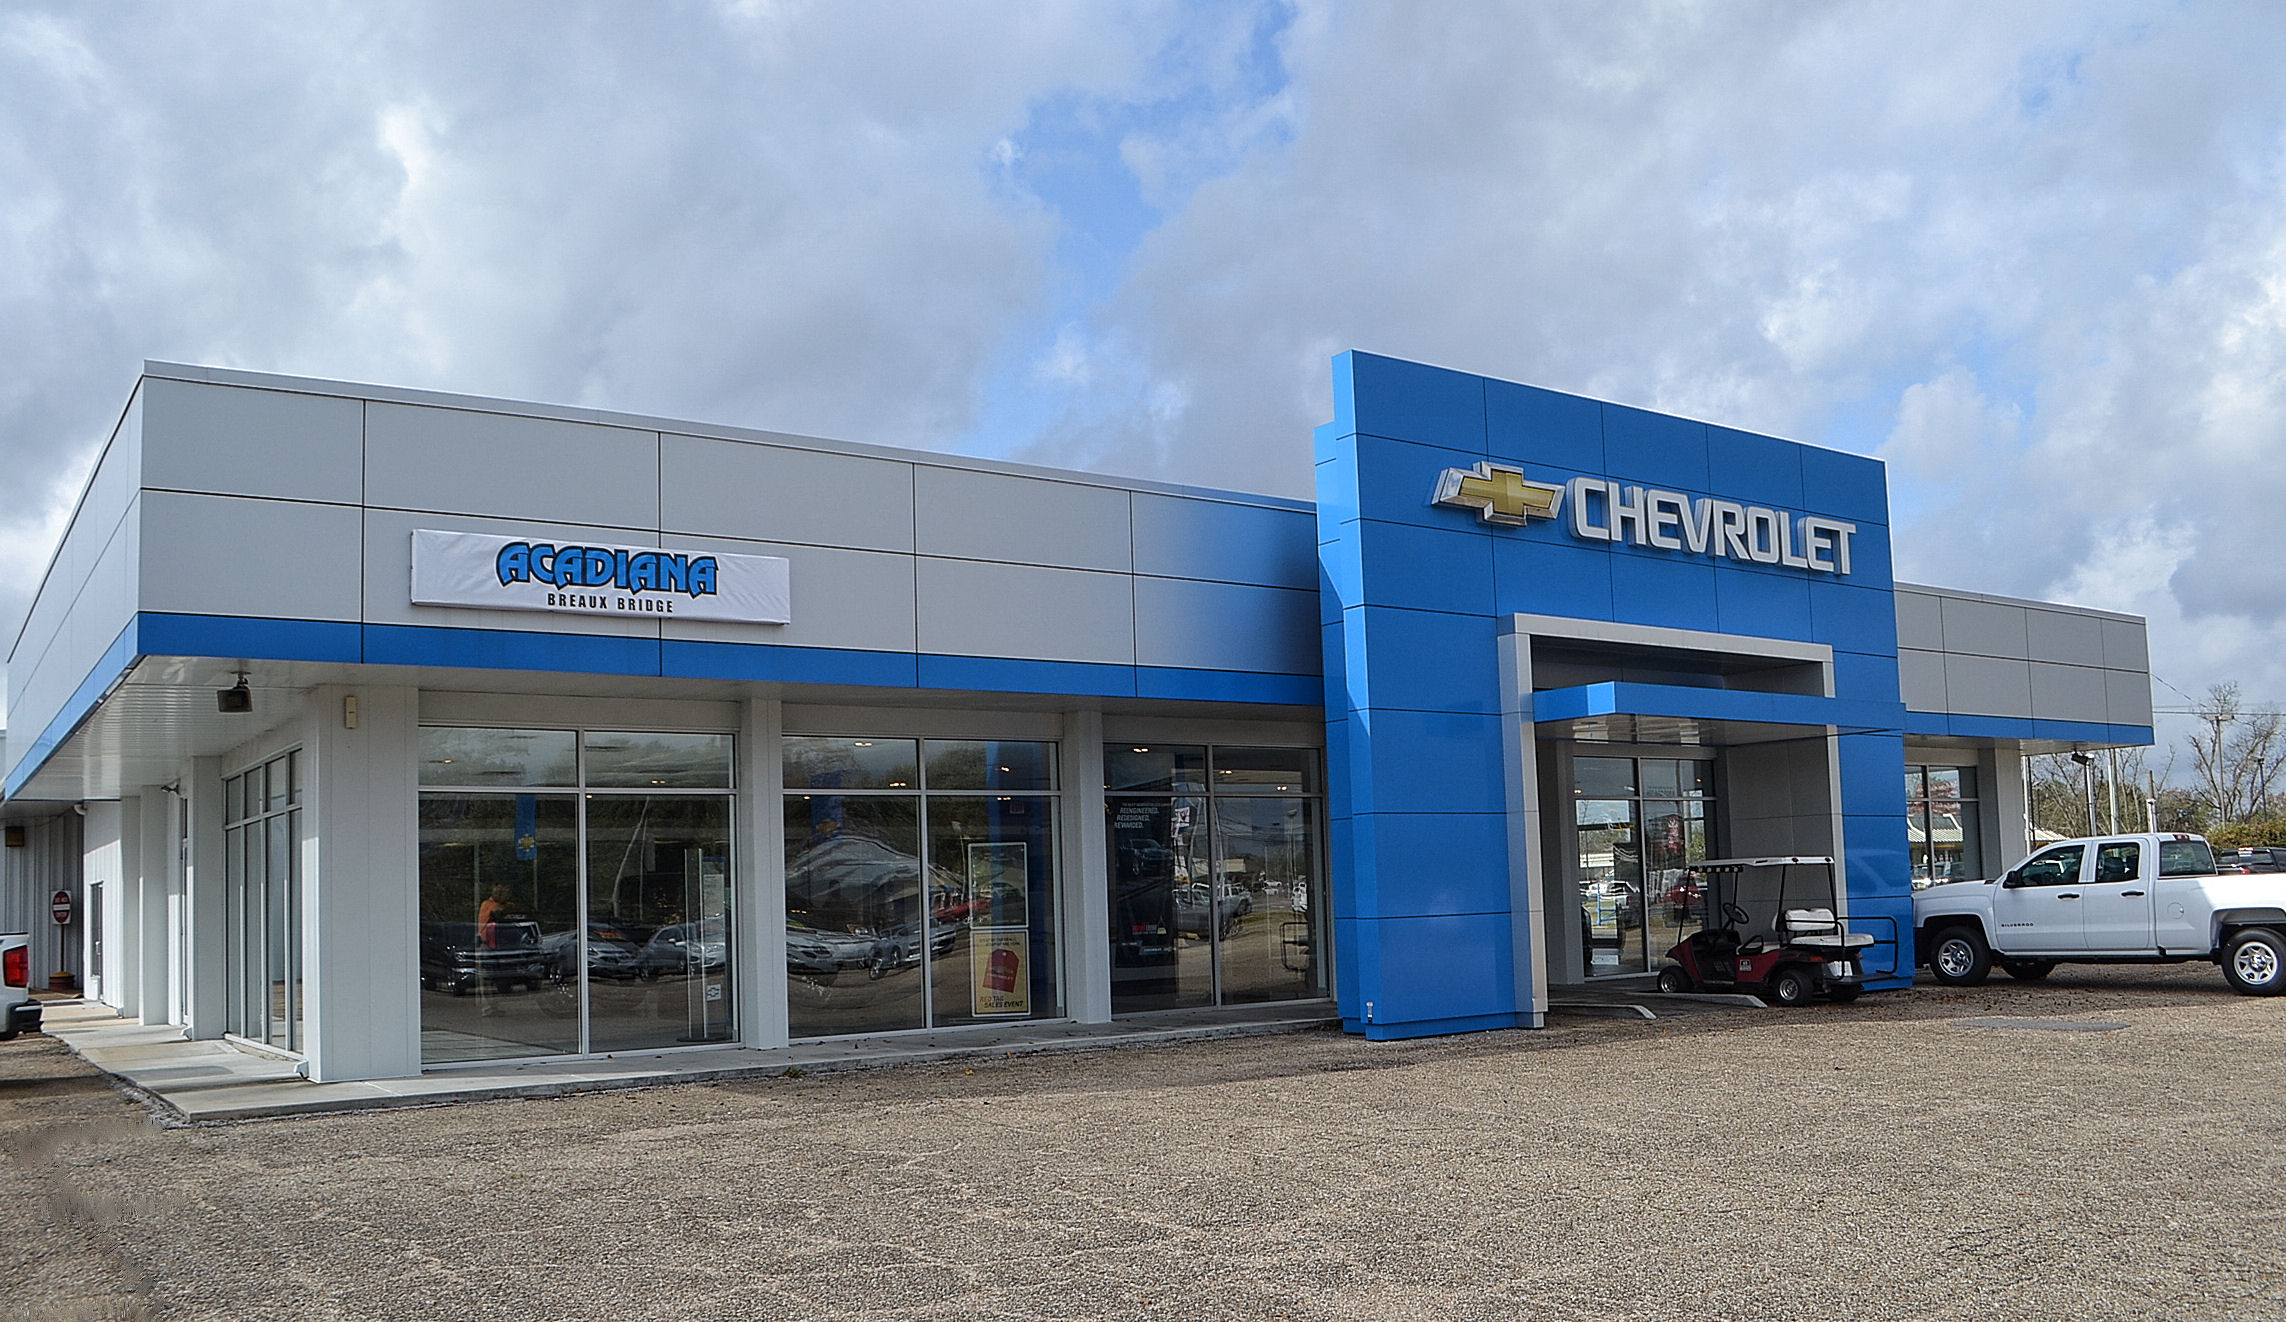 THE NEW ACADIANA CHEVROLET BREAUX BRIDGE